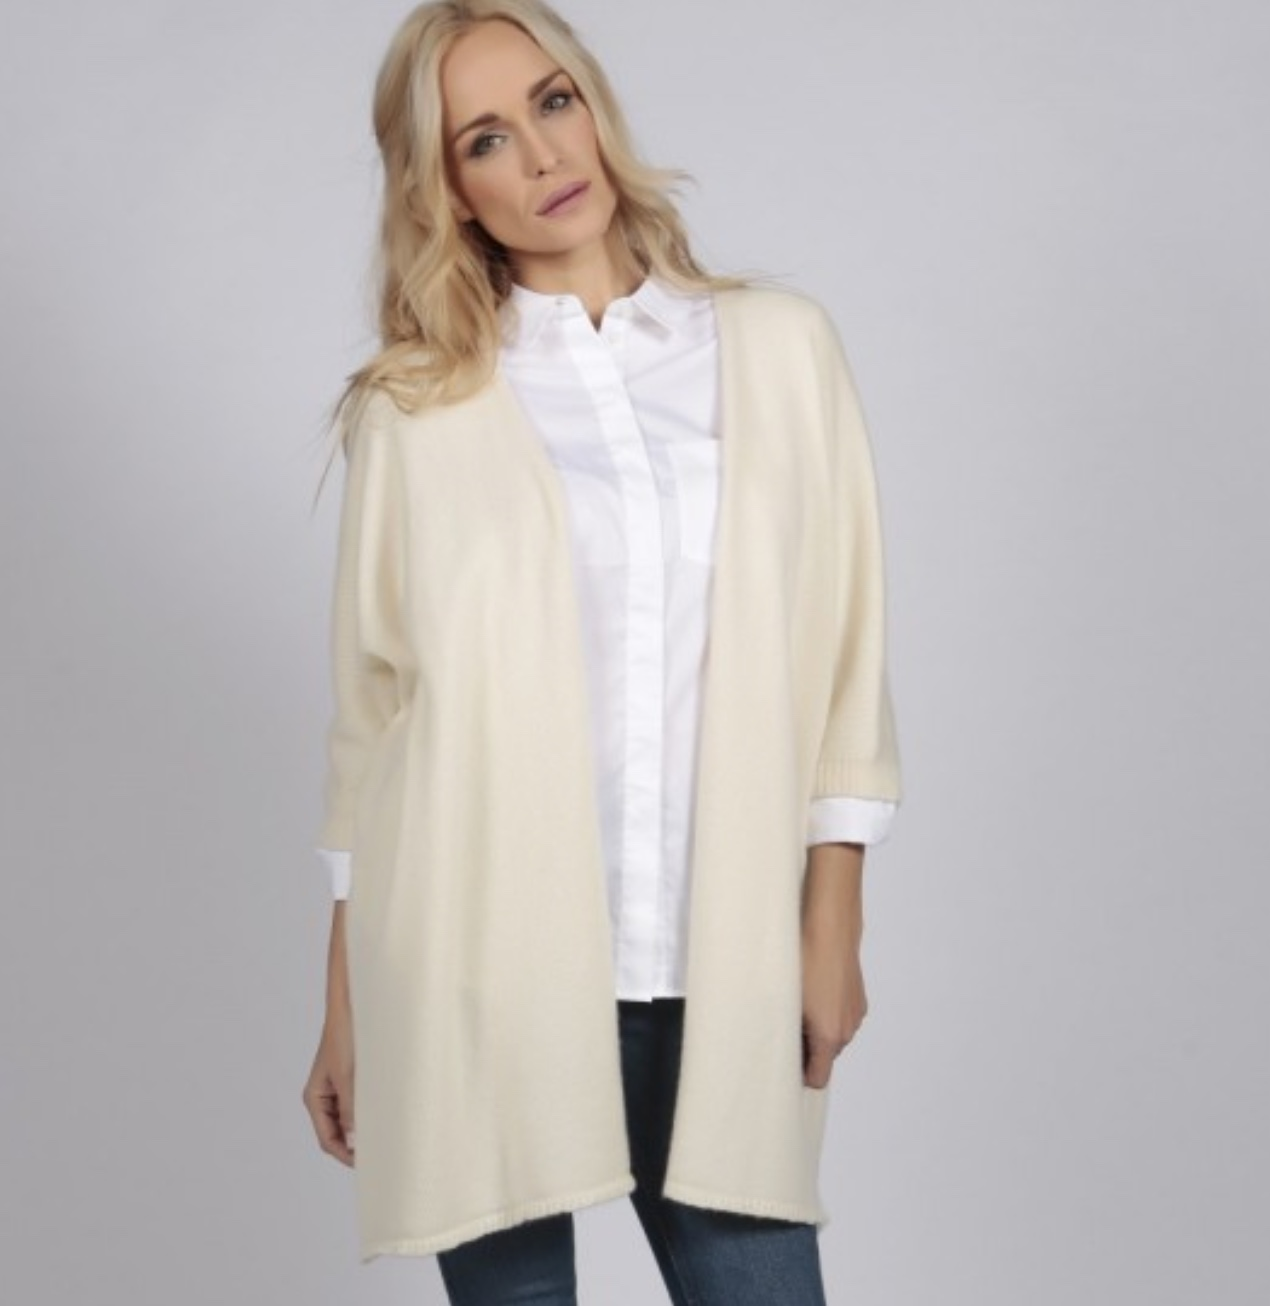 italy in cashmere cream white pure cashmere duster cardigan